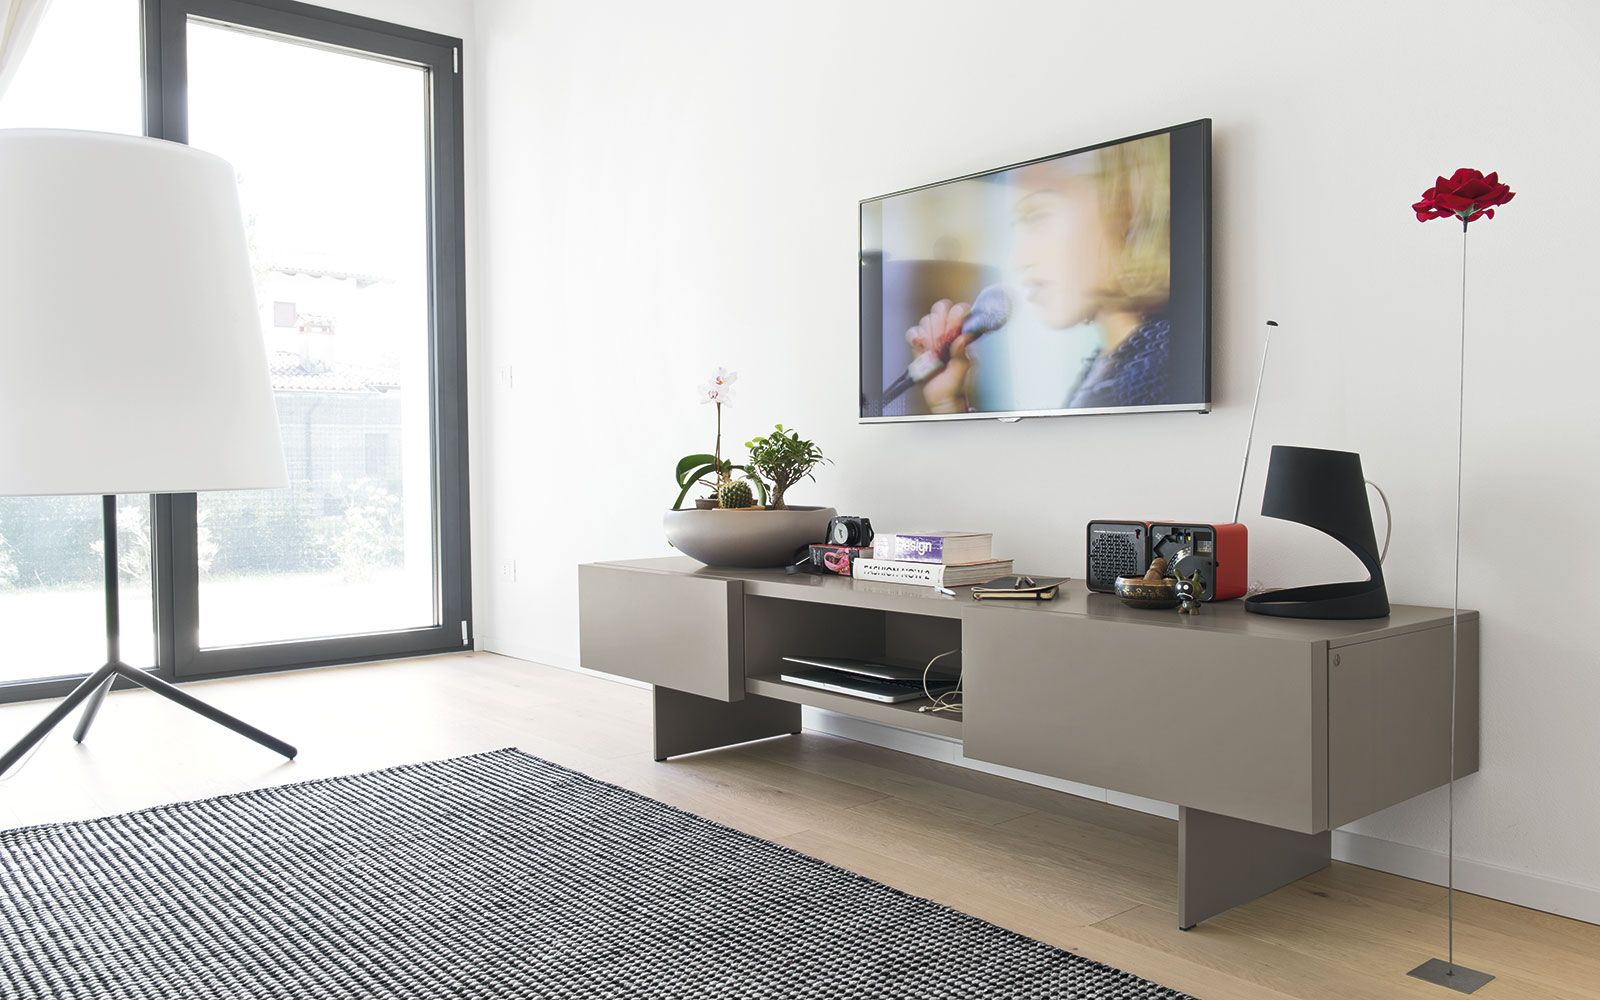 Calligaris Meuble Suspendu - Low Tv Bench Sipario Calligaris Cs 6050 4 Family Room [mjhdah]https://www.viadurini.fr/data/prod/img/connubia-calligaris-element-porta-tv-design-moderno-in-legno-e-vetro.jpg